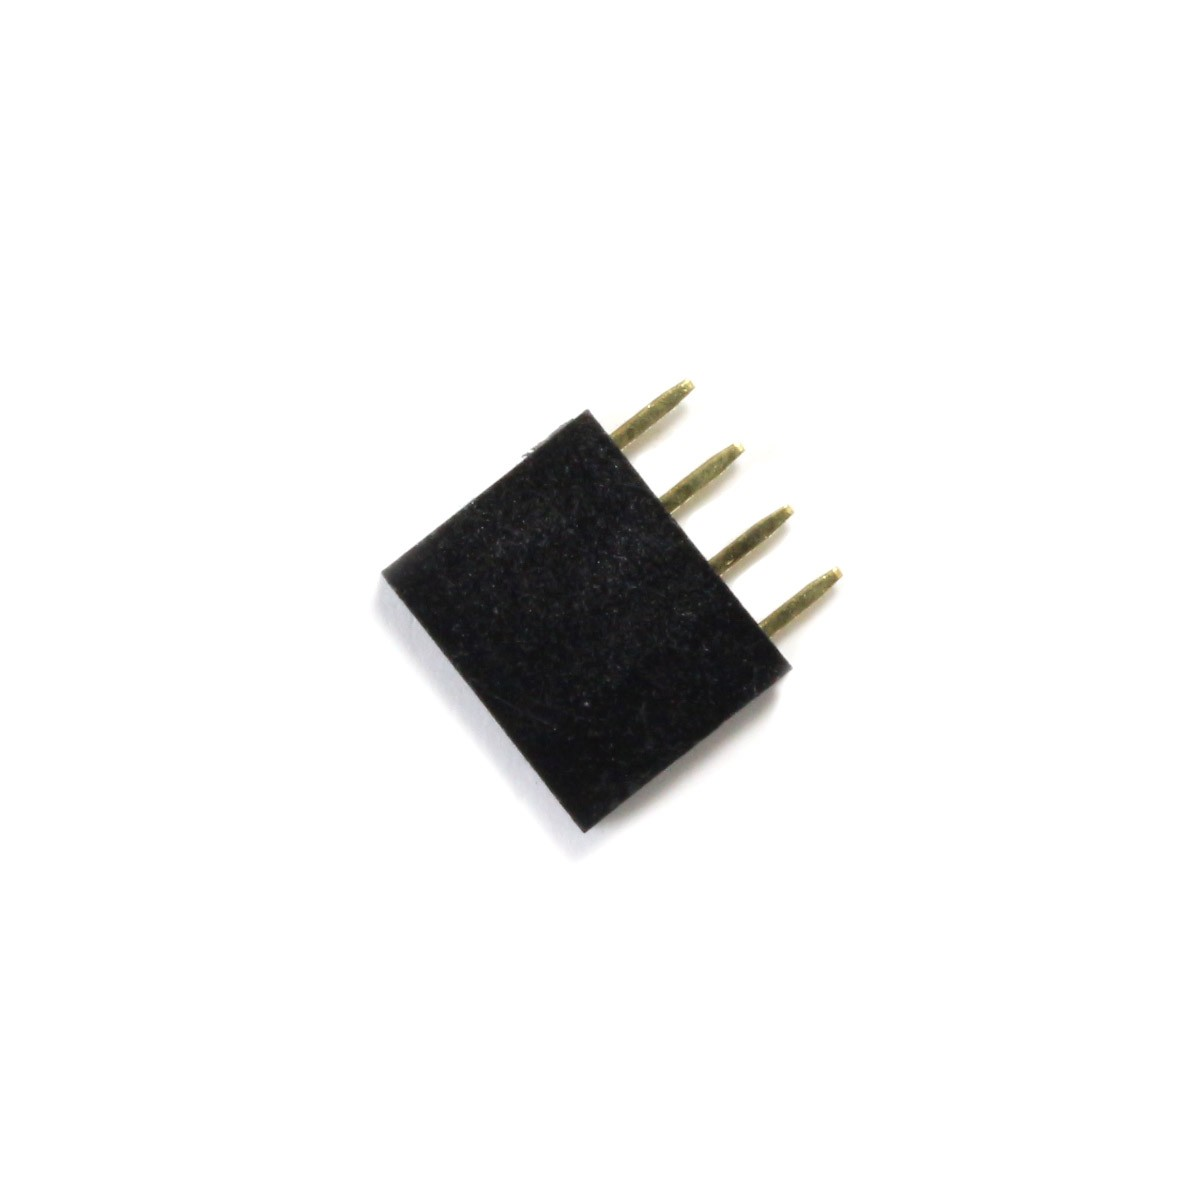 Male / Female Pin Header Straight Connector 1x4 Pins 2.54mm Spacing